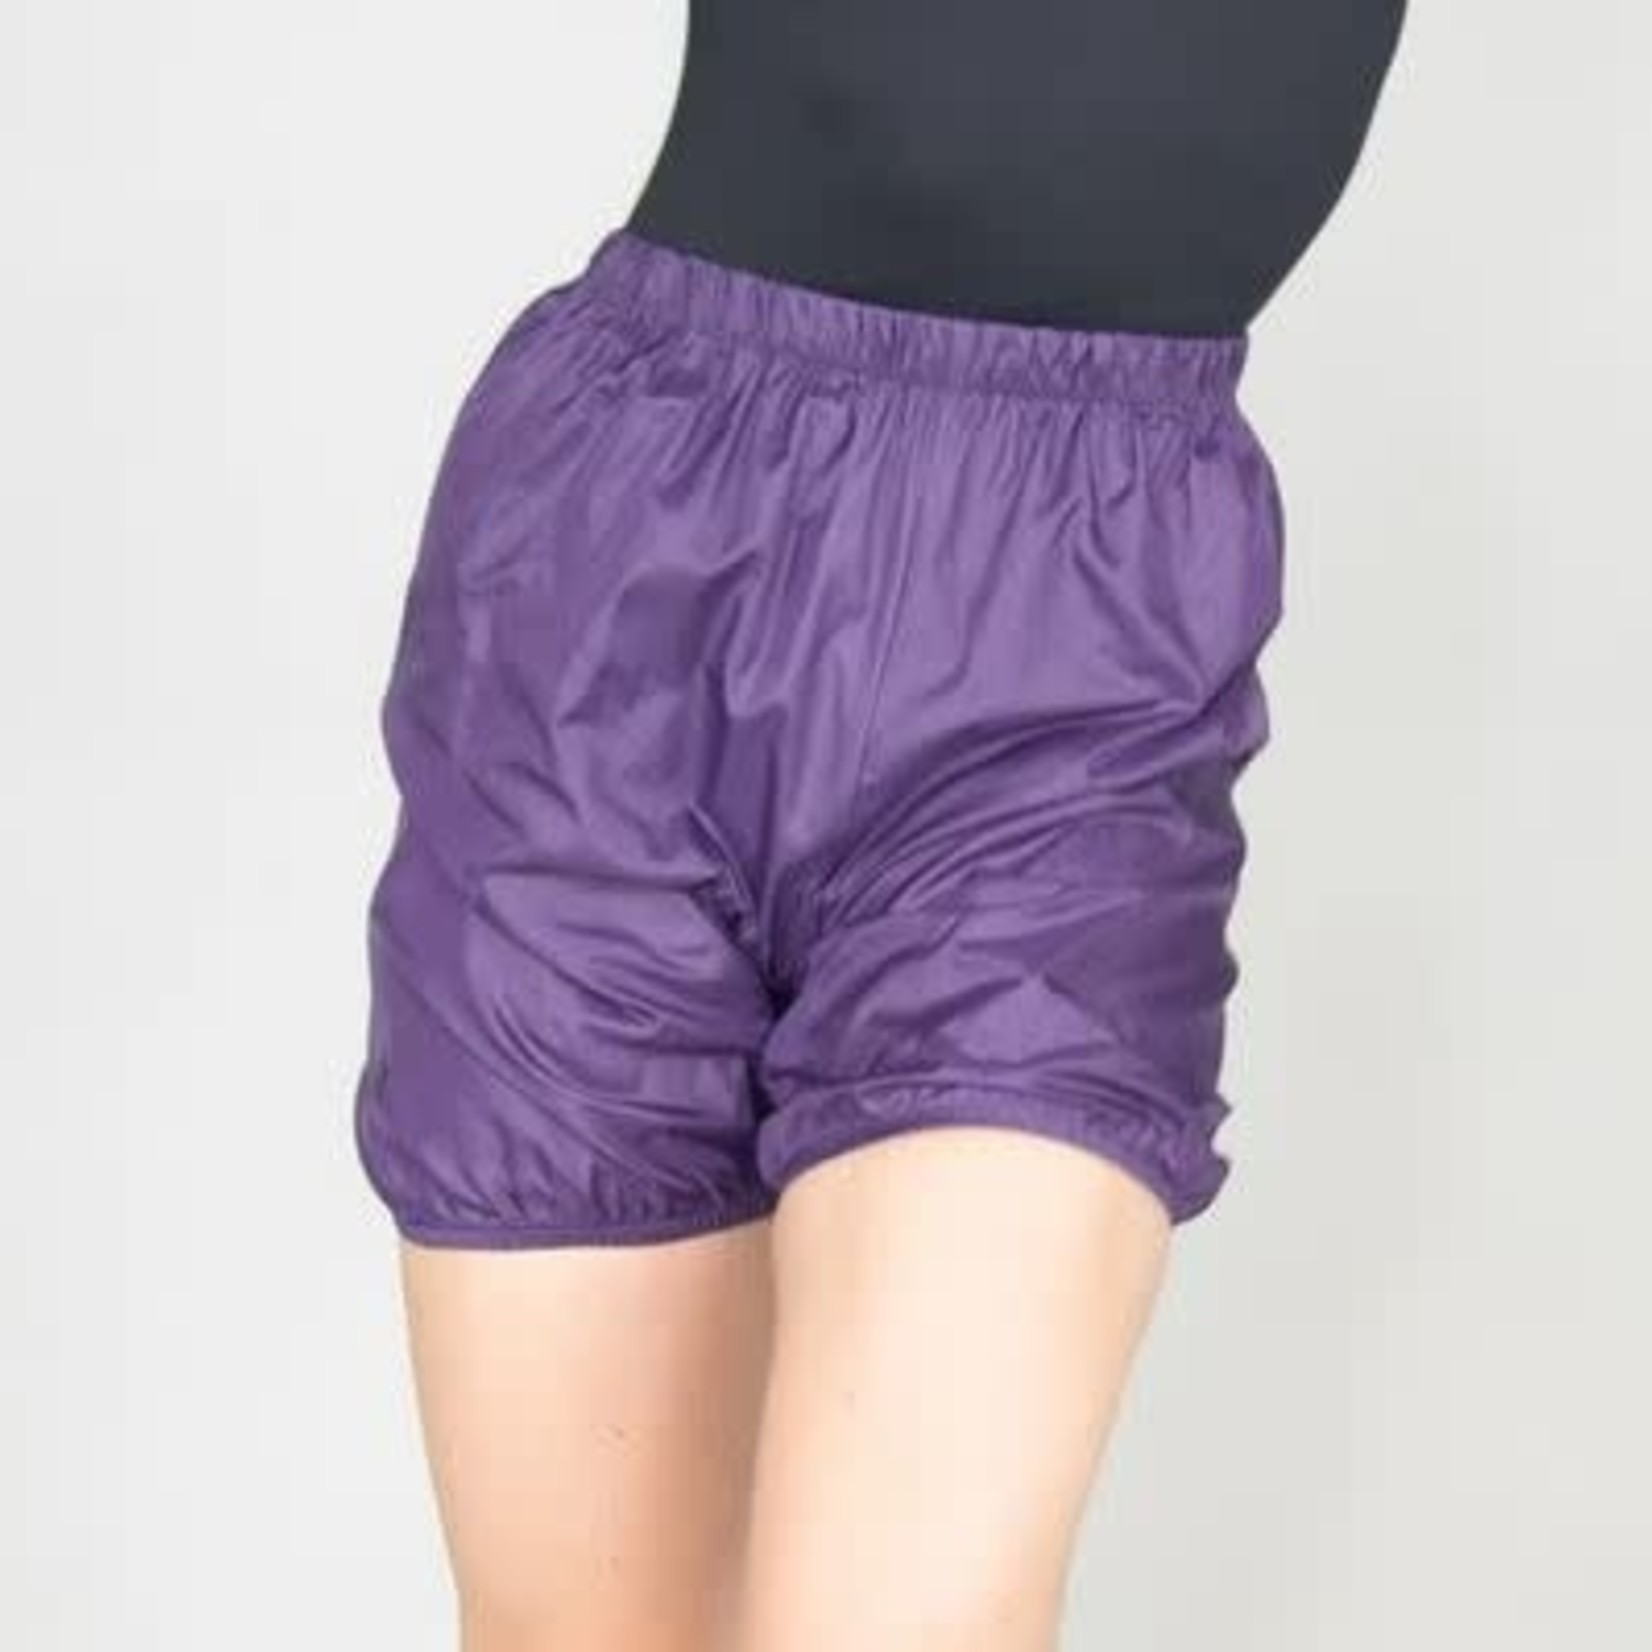 Body Wrappers Body Wrappers 746 Adult Warm-up Bloomers Shorts